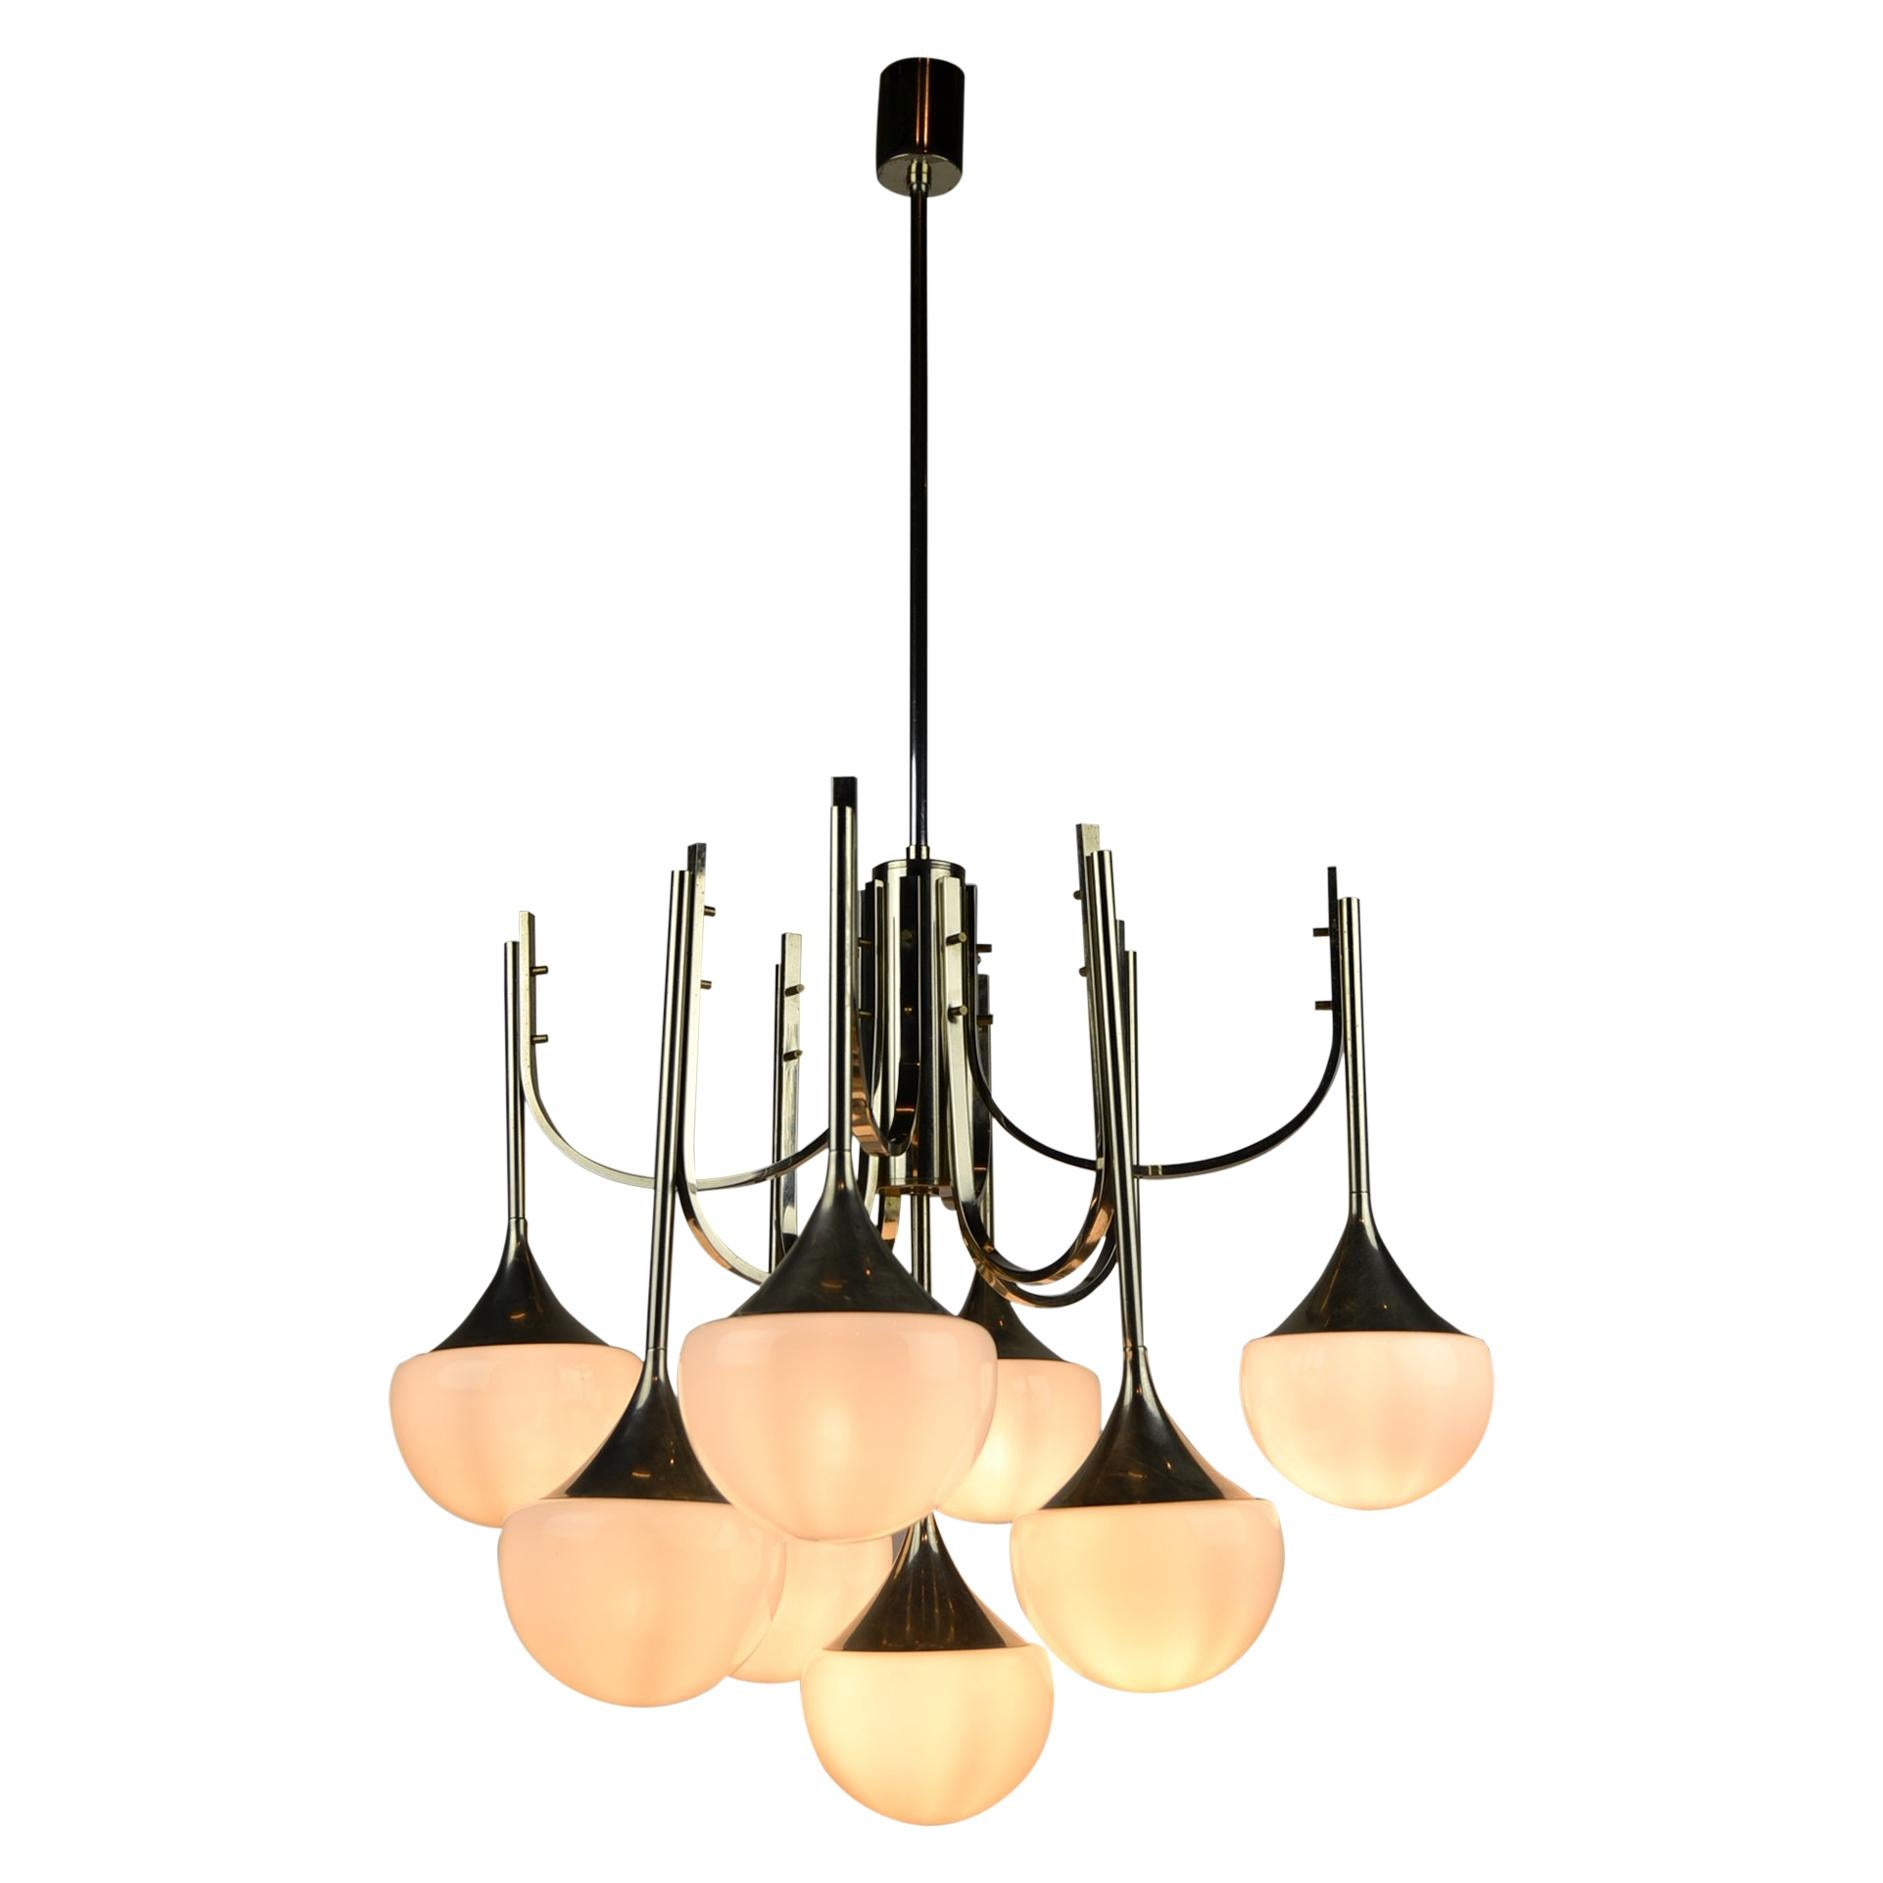 Goffredo Reggiani 9 Armed Trumpet Chandelier, Italy, 1970s, Chrome and Opaline